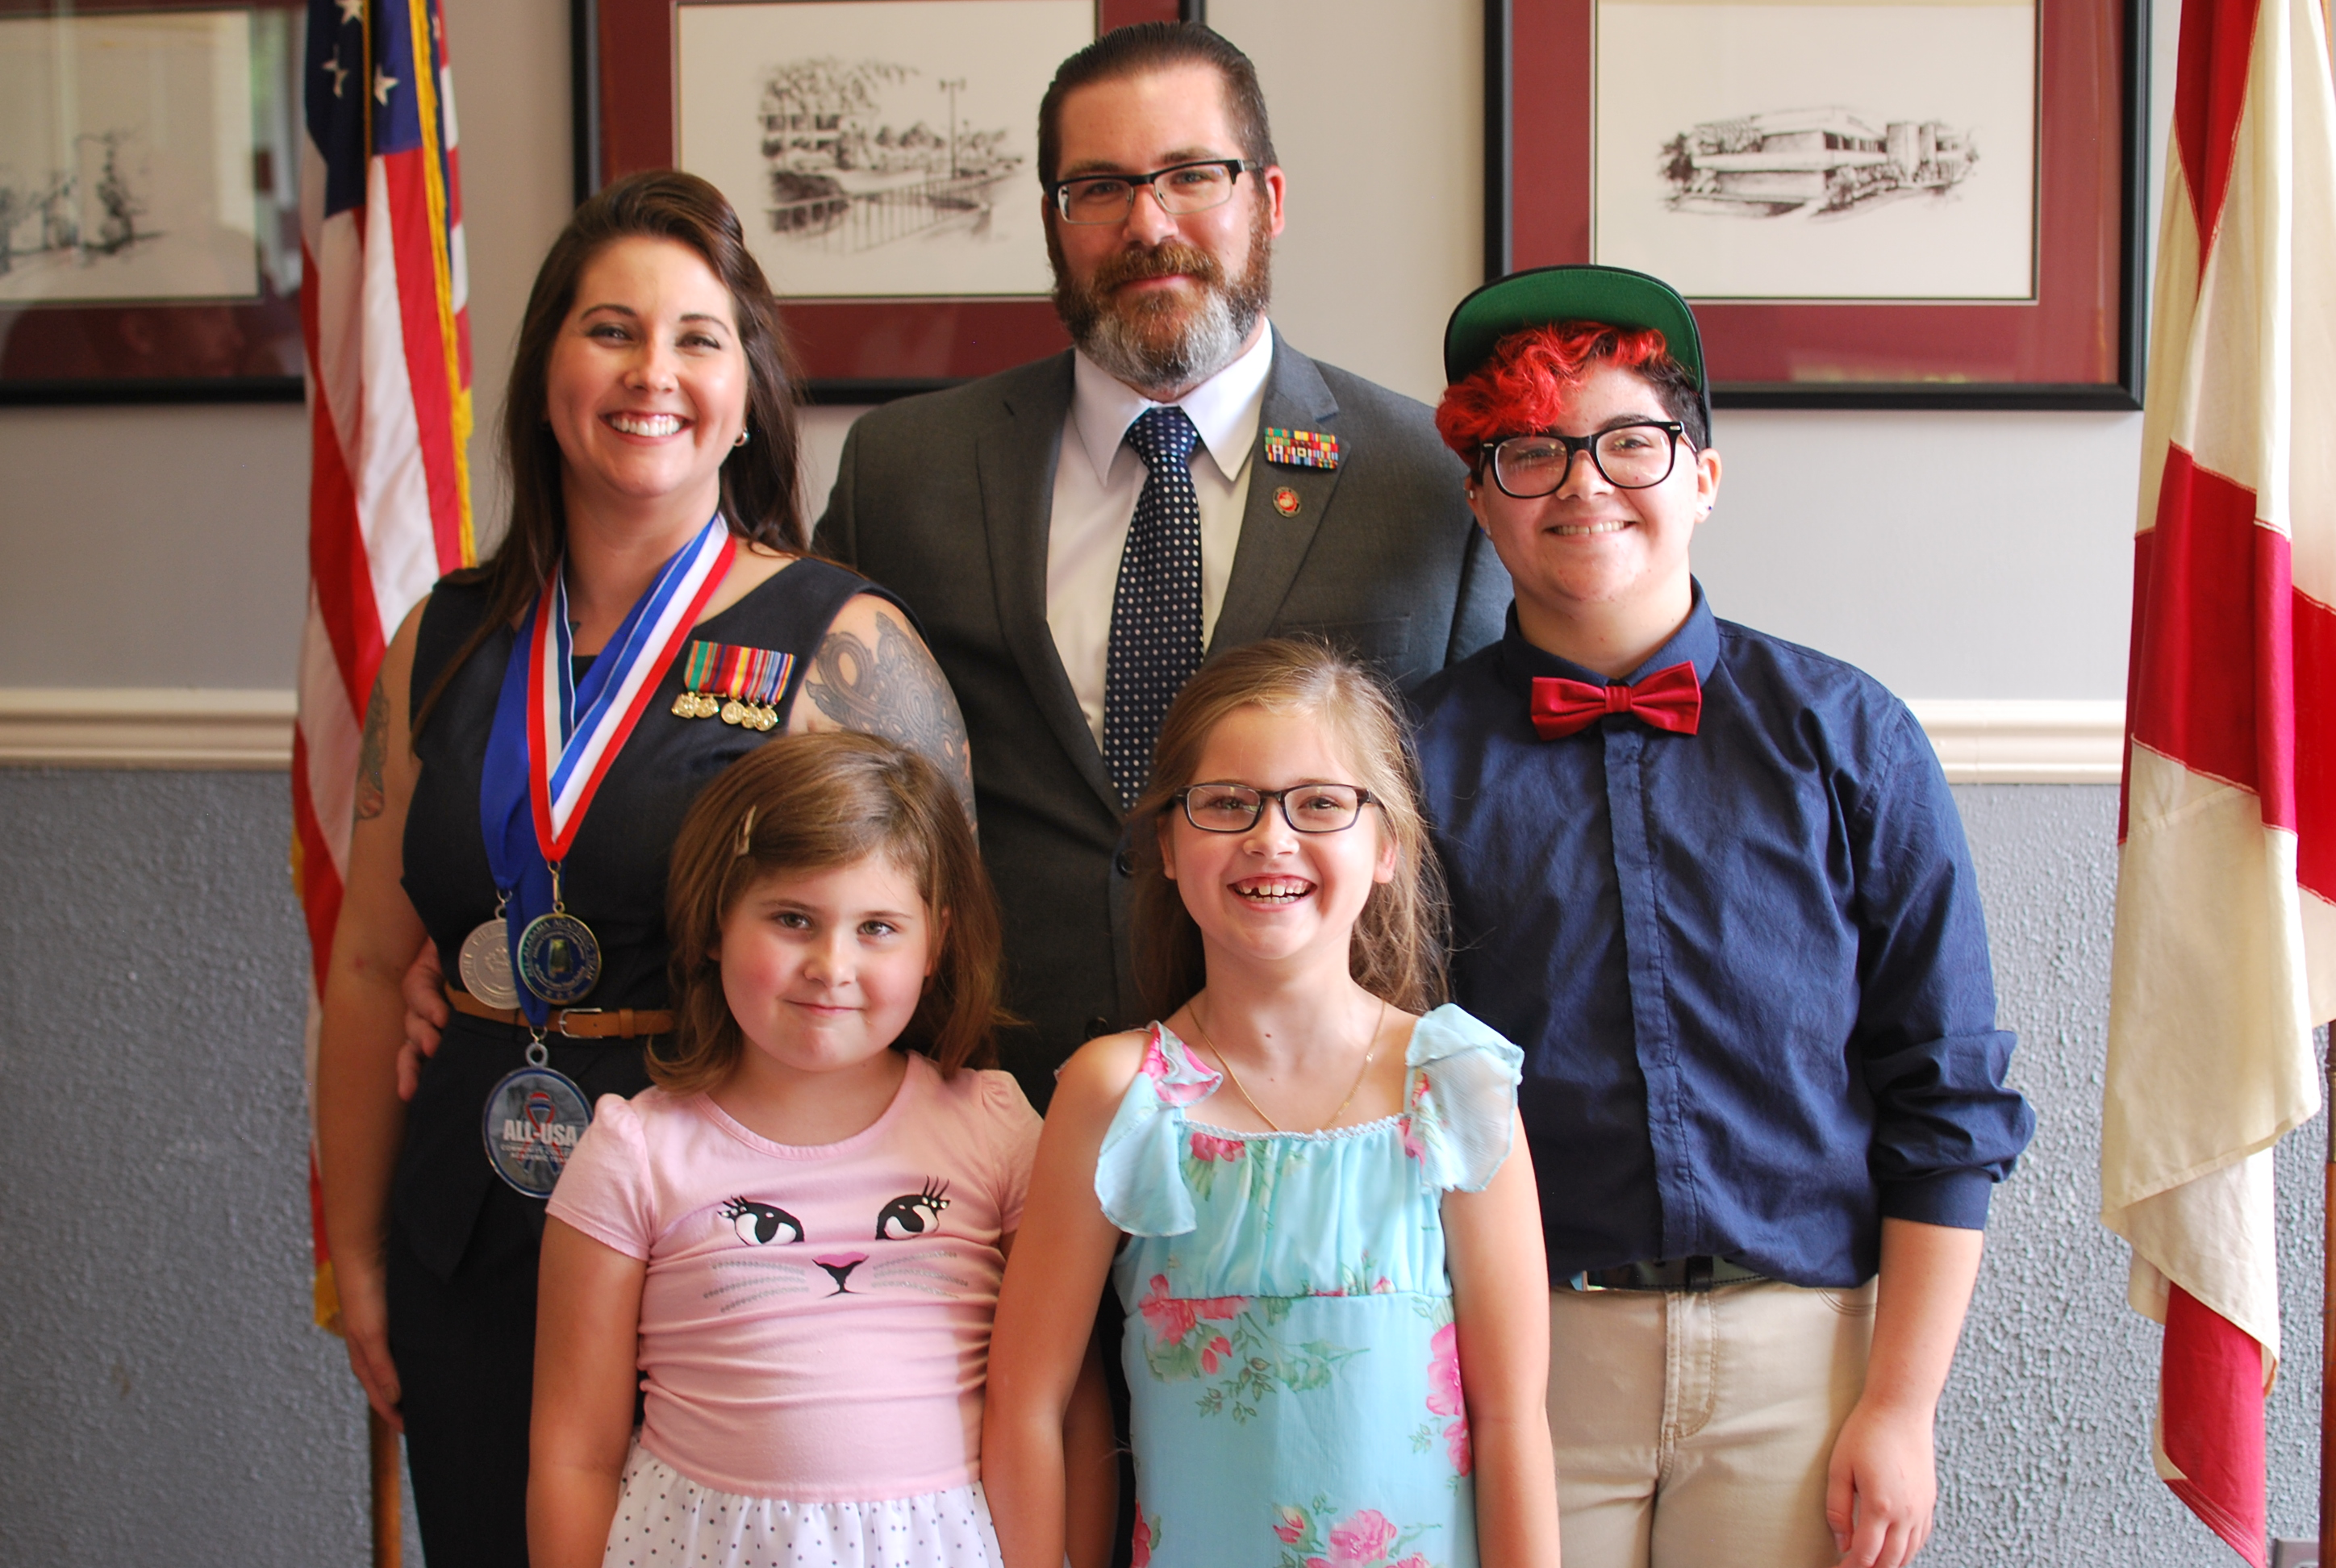 Trussville resident receives prestigious honor at Jefferson State